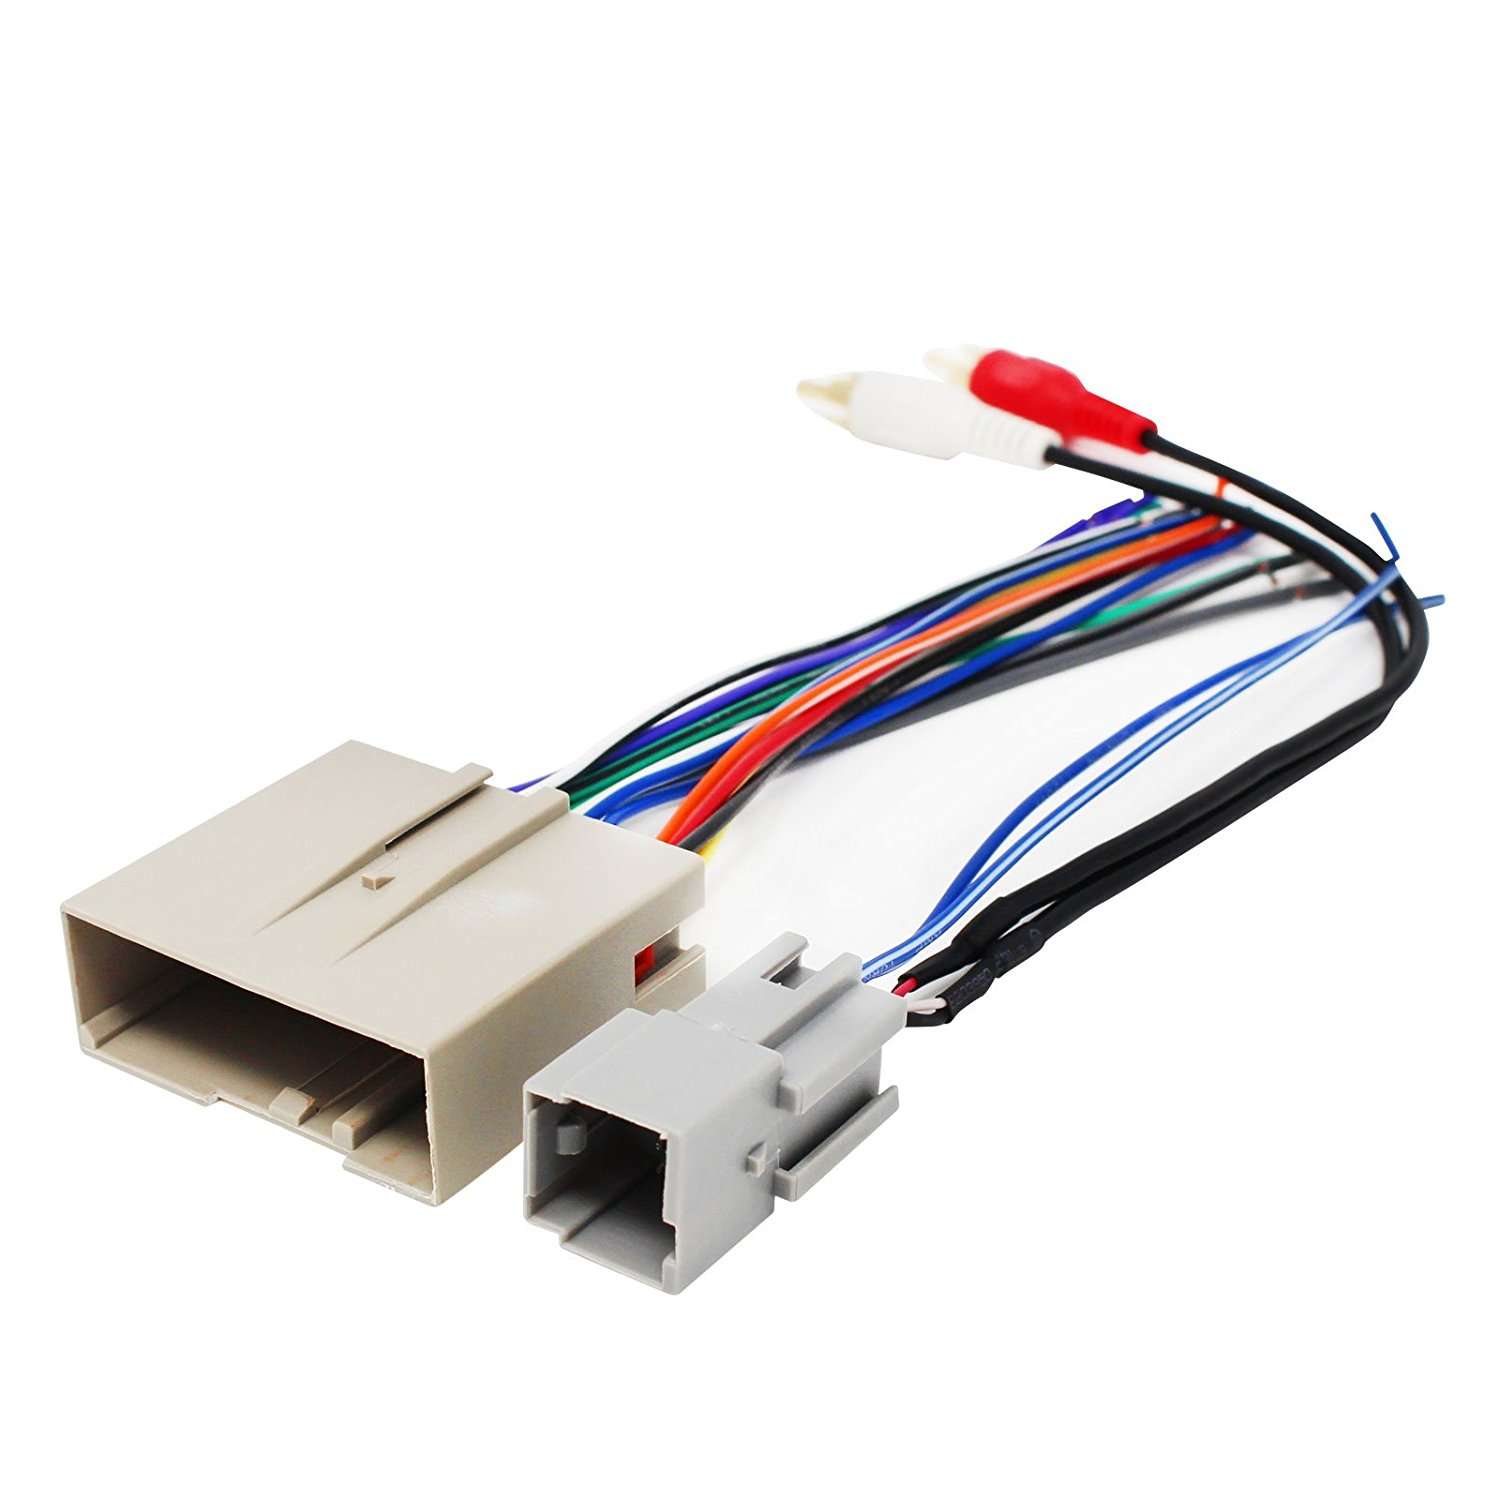 Replacement Radio Wiring Harness for 2004 Ford F-350 Super Duty Lariat Cab /& Chassis 4-Door 6.0L Car Stereo Connector